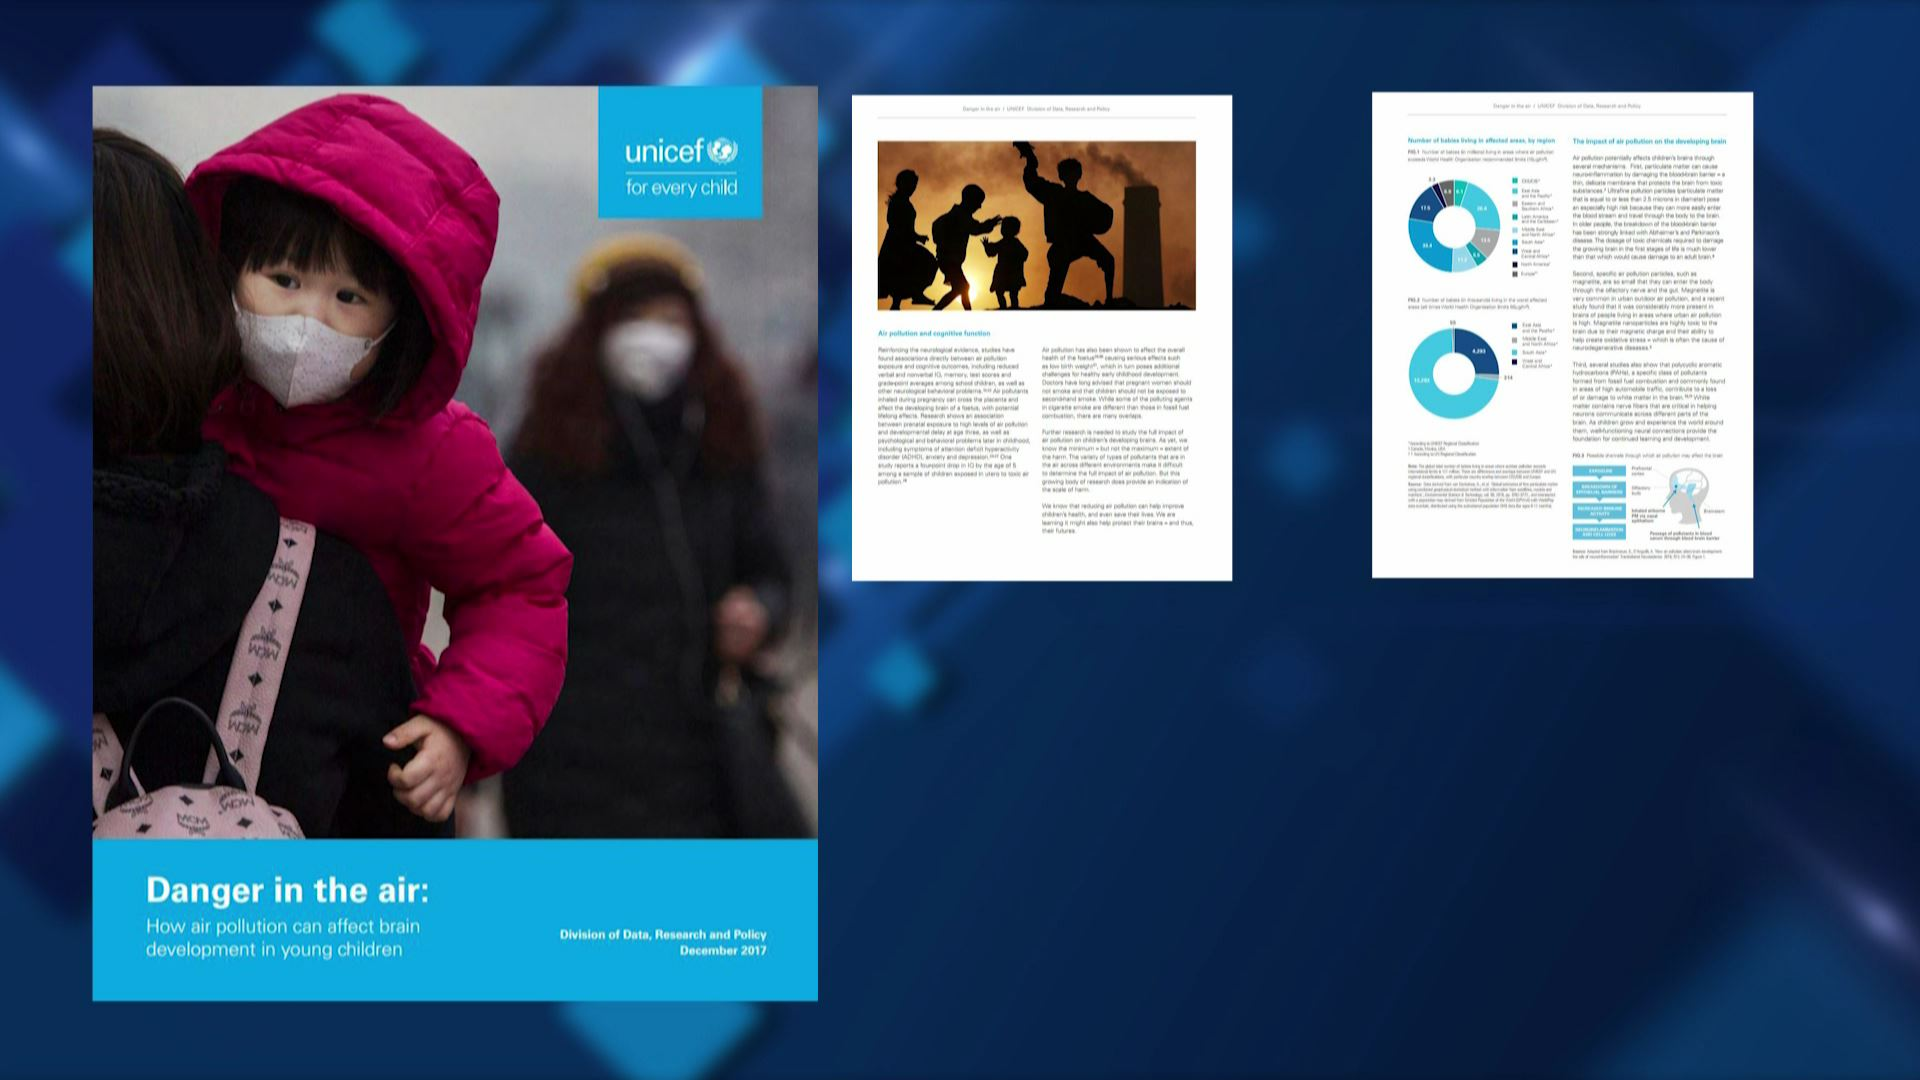 The danger in the air - the UNICEF conclusion